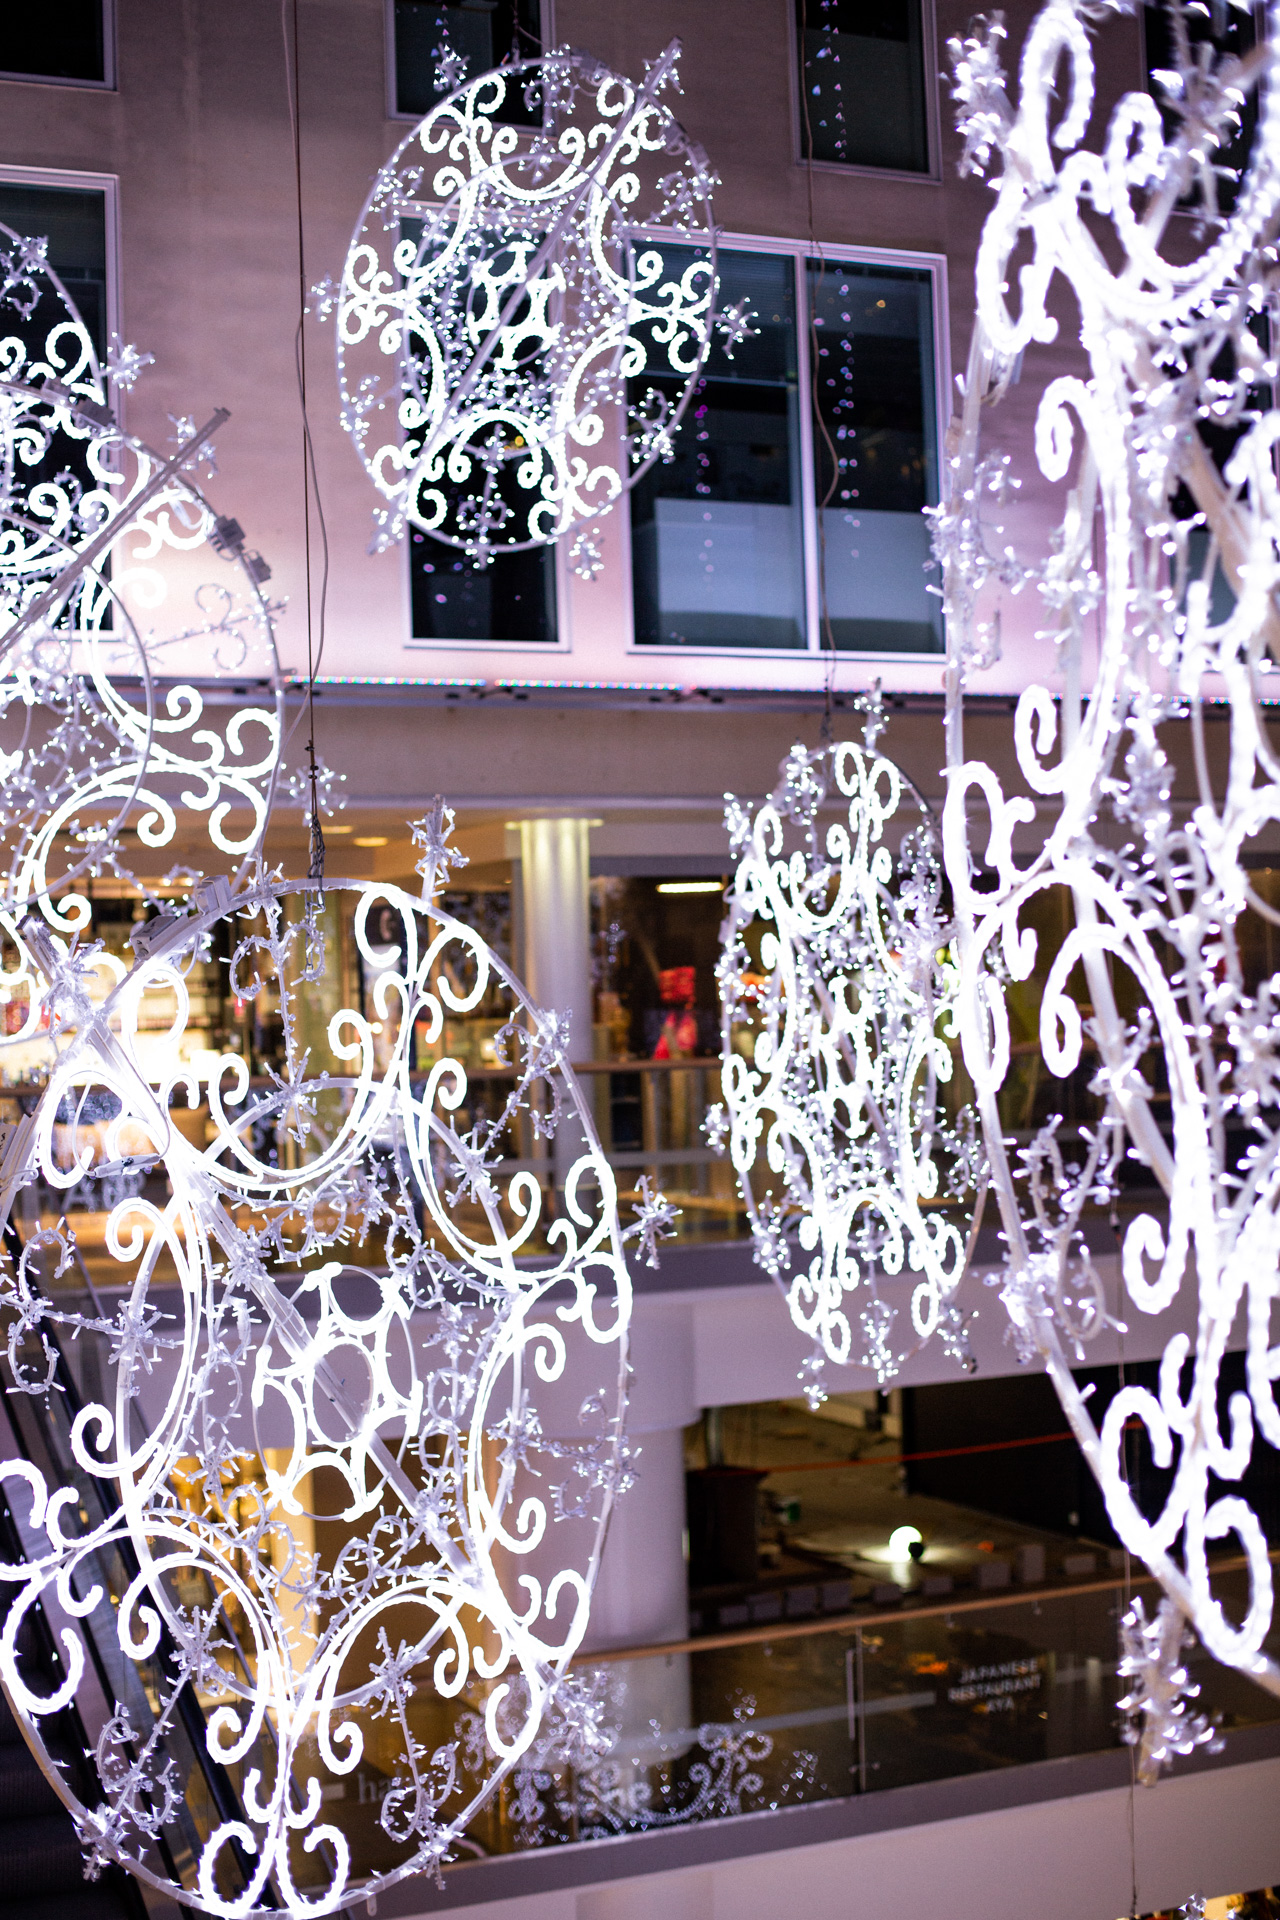 Artificial snow flake decorations in the shopping center City Center in Helsinki, Finland.